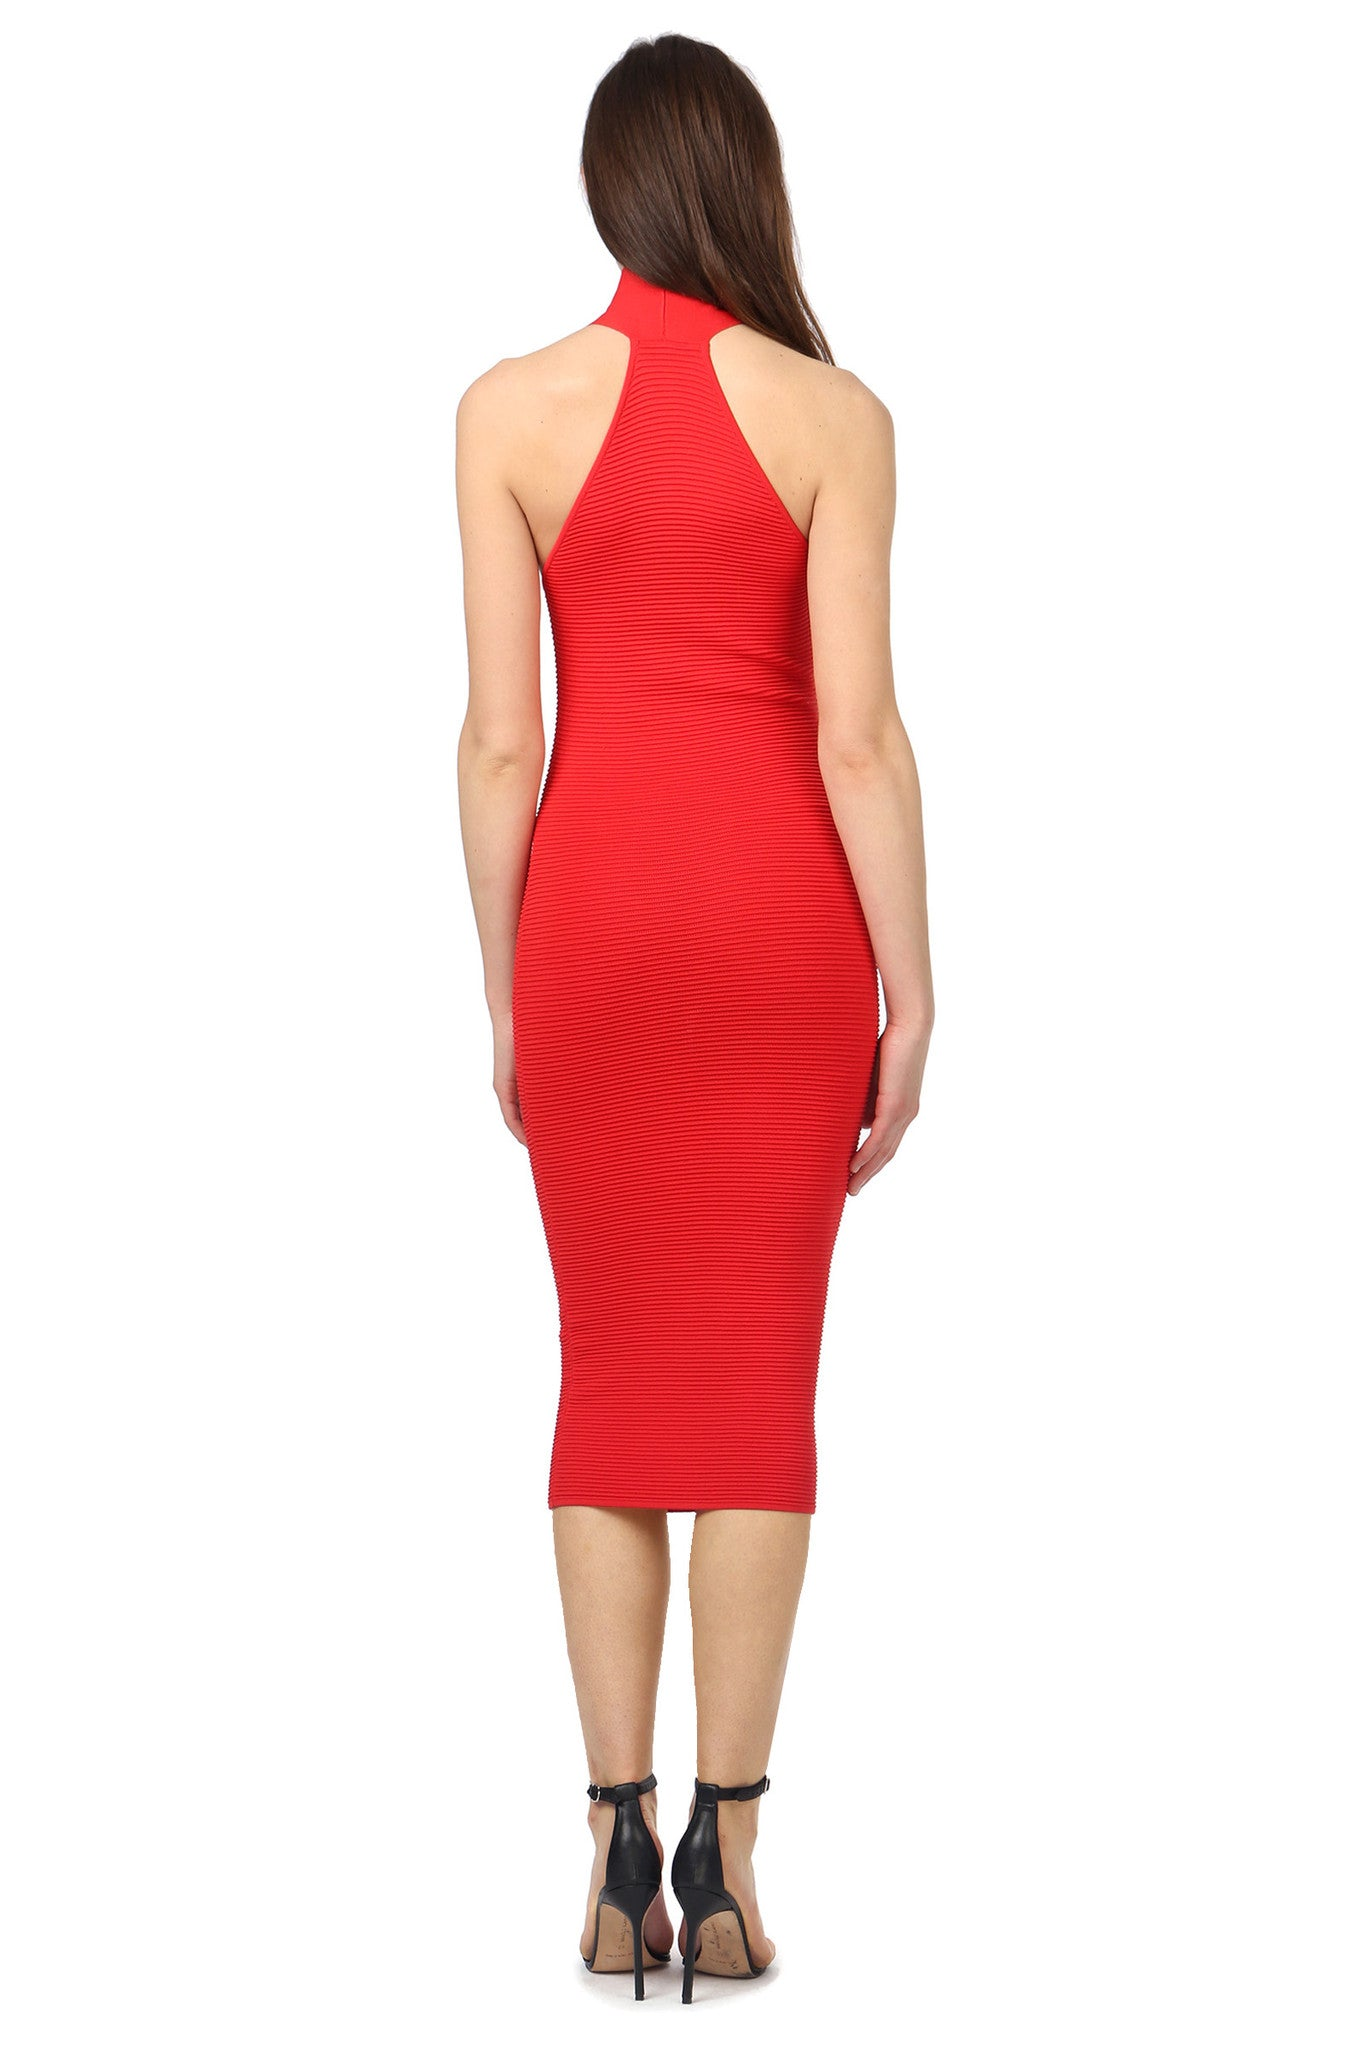 Jay Godfrey Red Body-Con Dress - Back View